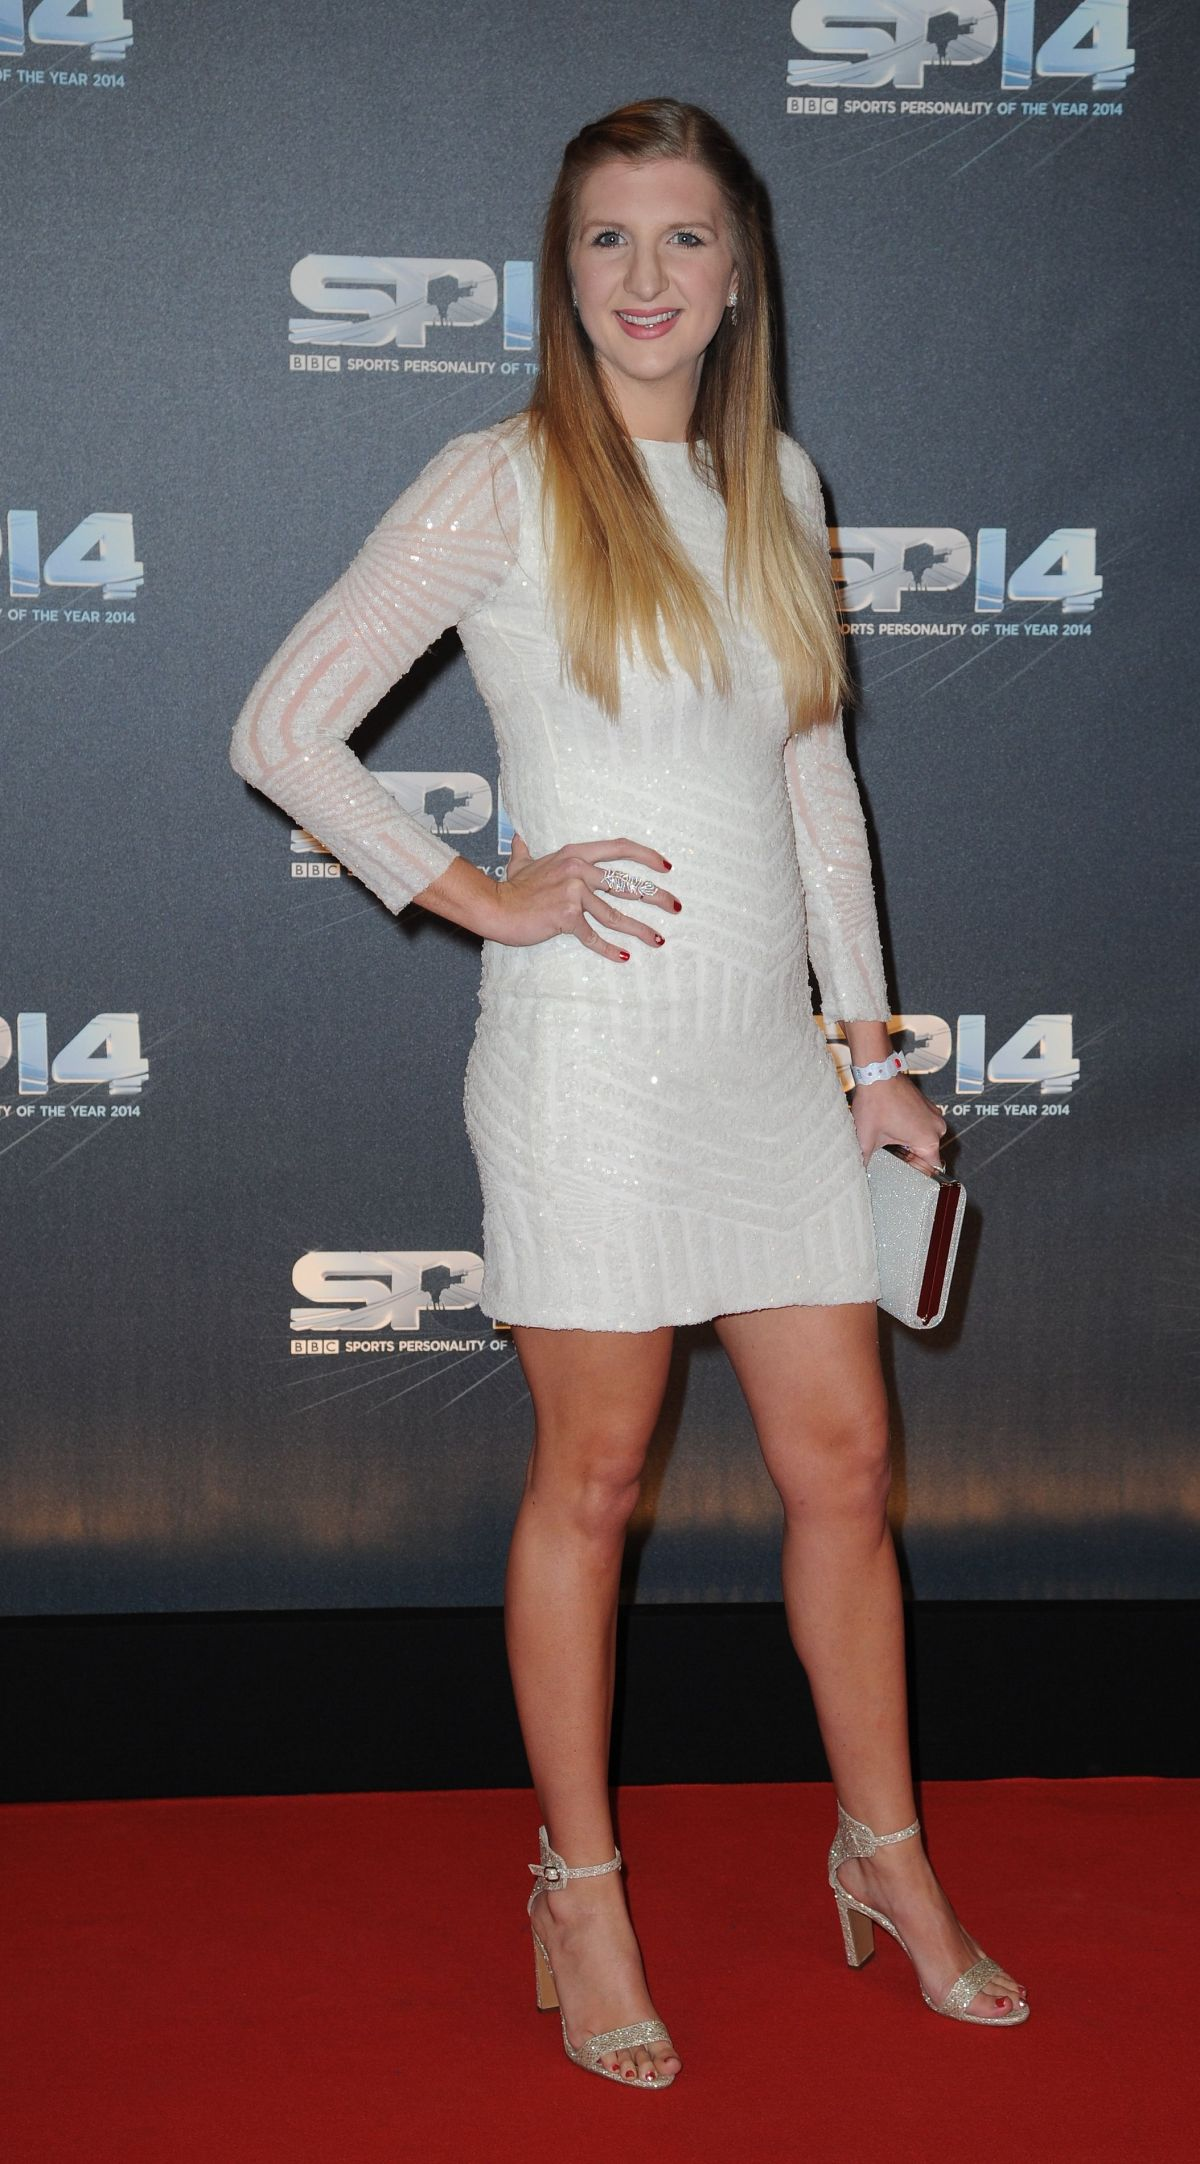 REBECCA ADLINGTON at BBC Sports Personality of the Year Awards in Glasgow